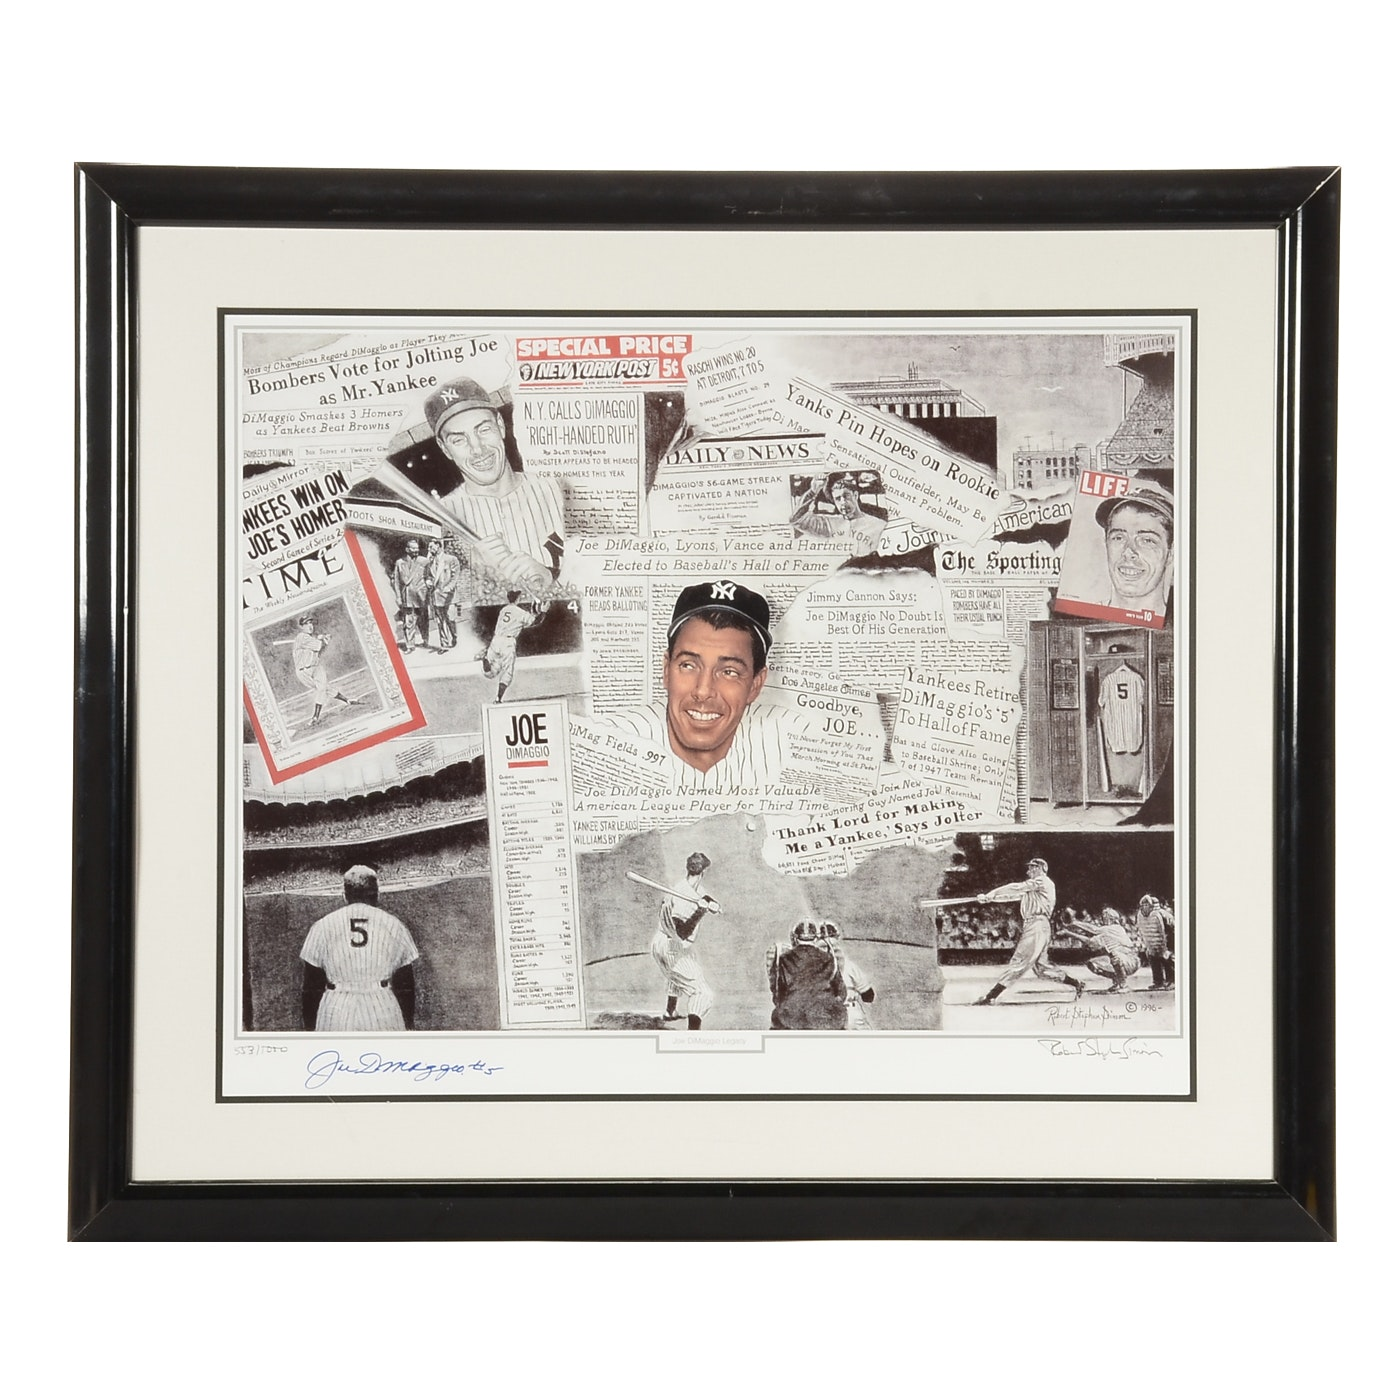 Joe DiMaggio Signed New York Yankees Framed Lithograph